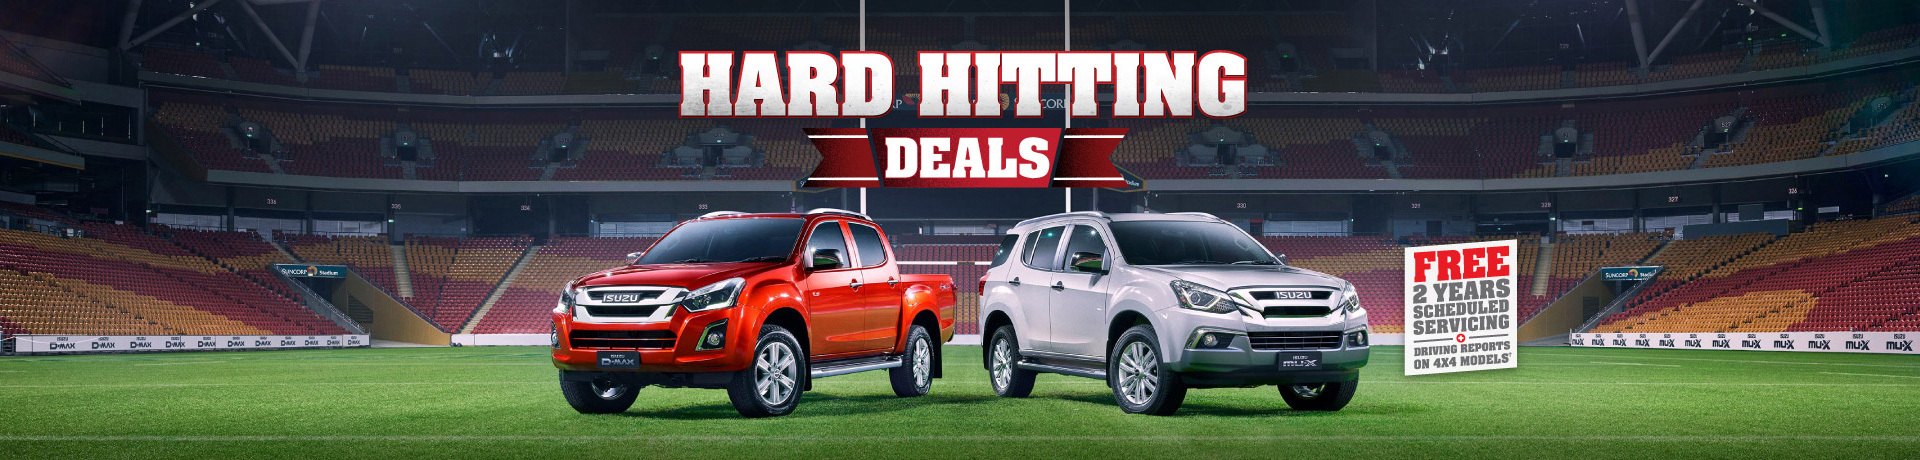 Isuzu - National Offer - Hard Hitting Deals